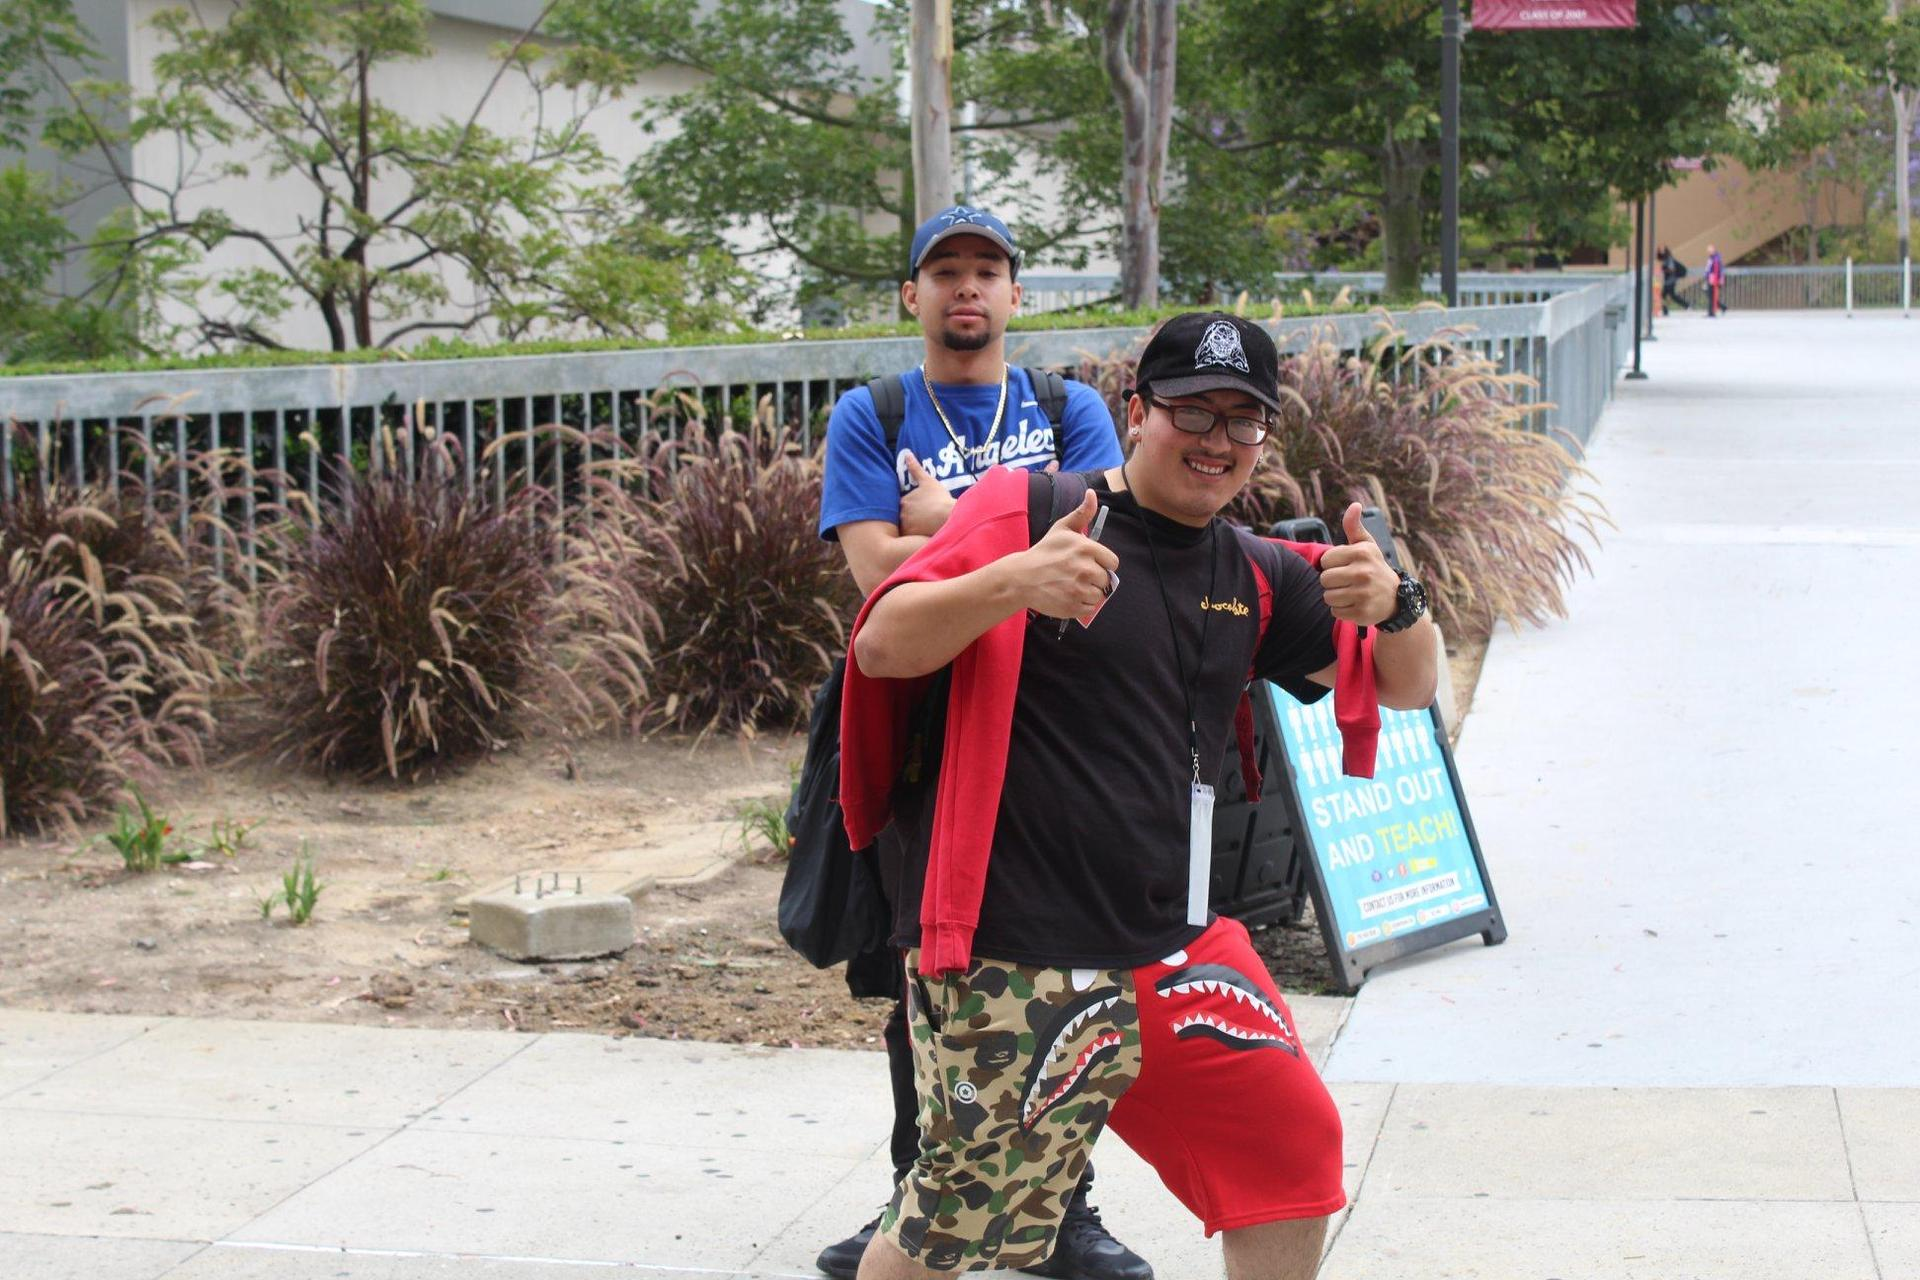 Two LA CAUSA students on a college tour